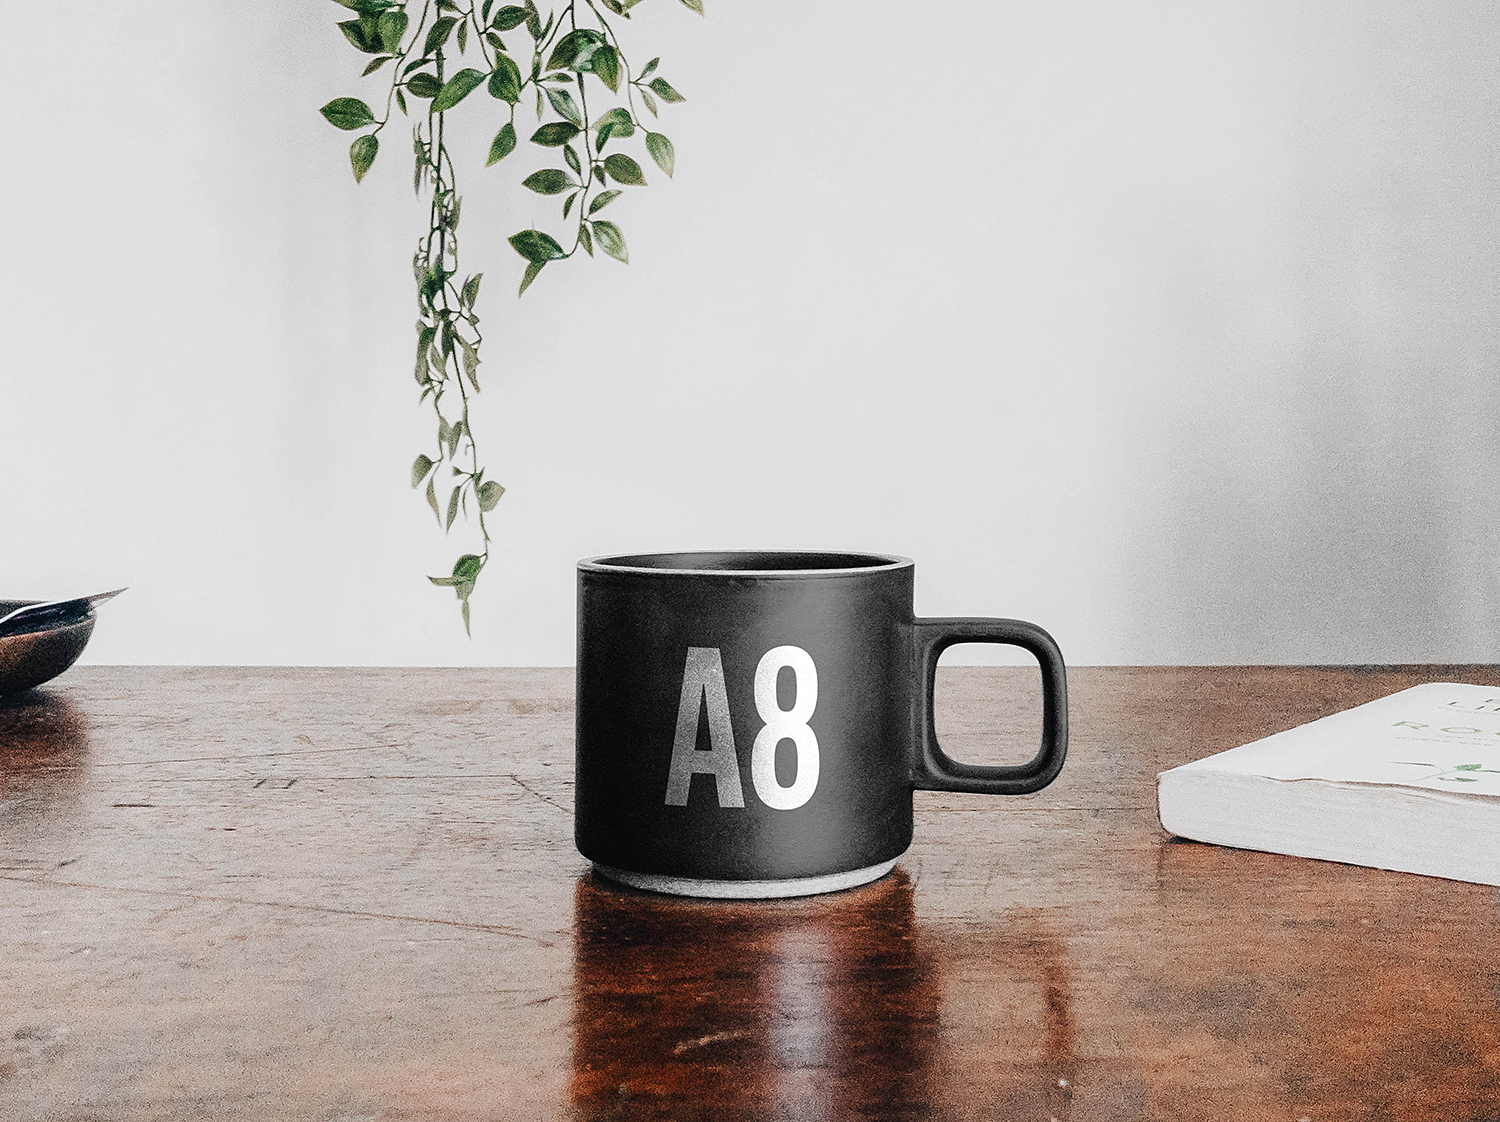 Free Mug on a Table Mockup